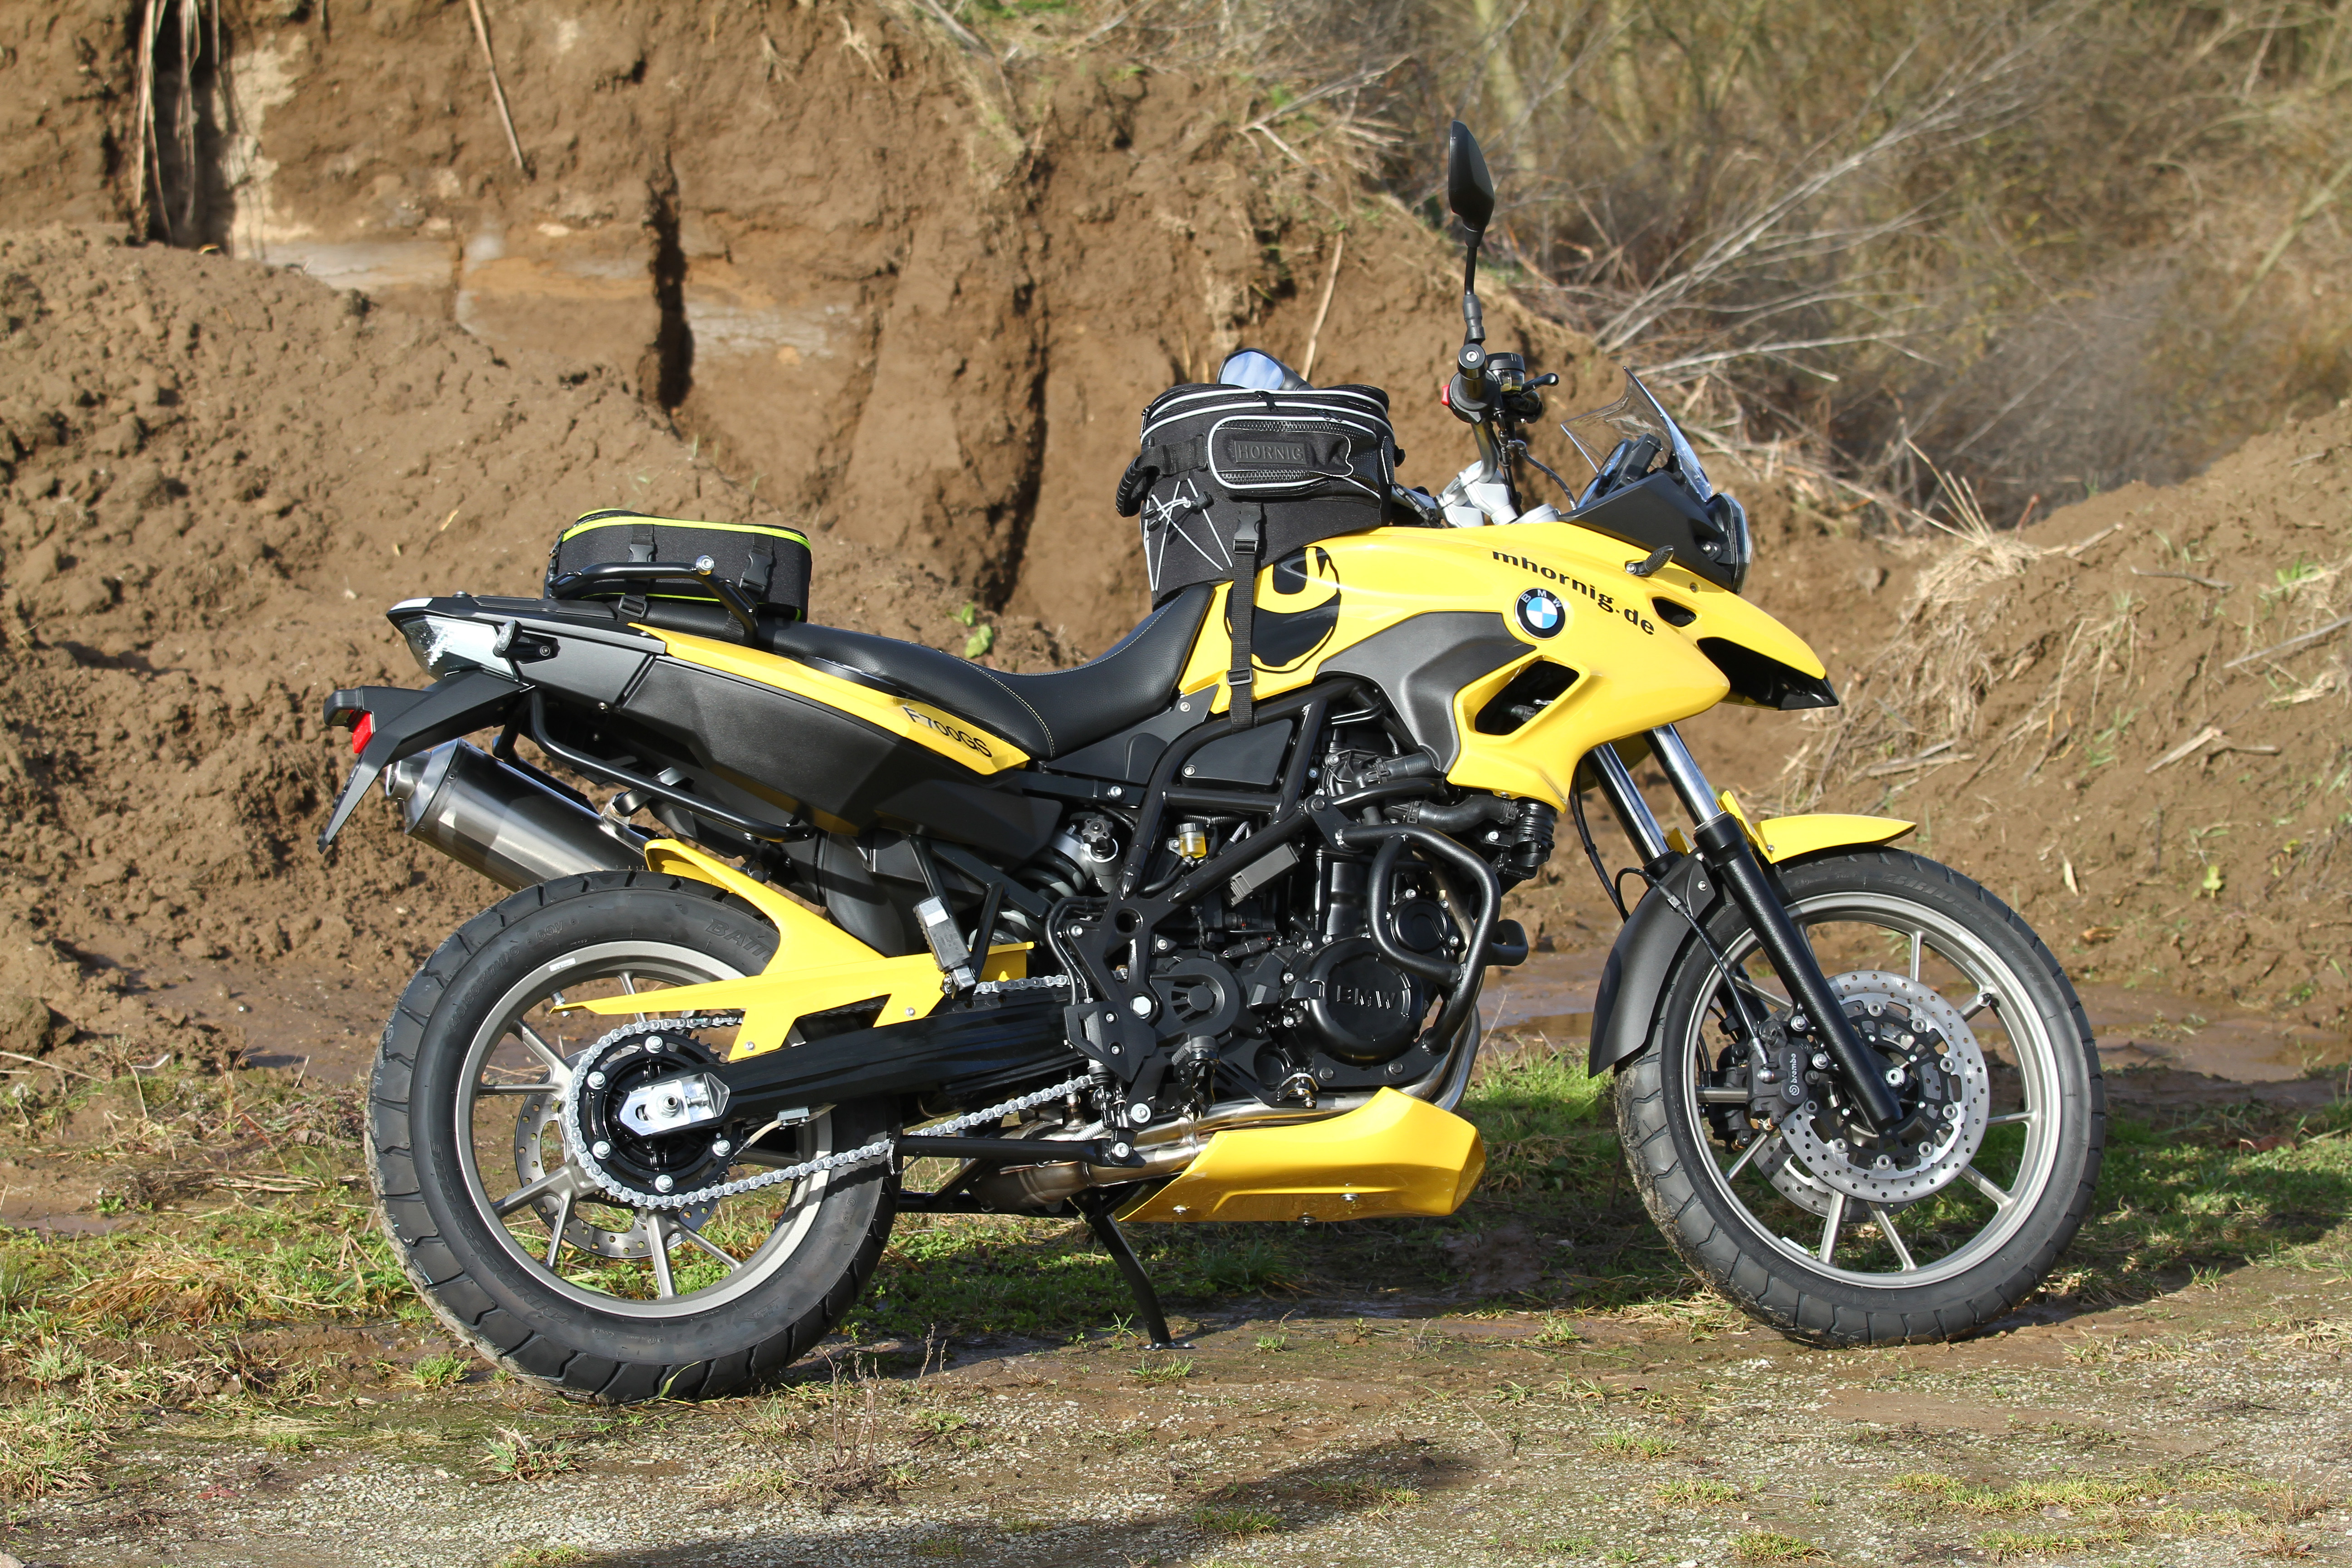 bmw f700gs conversion by hornig perfect for motorcycle. Black Bedroom Furniture Sets. Home Design Ideas